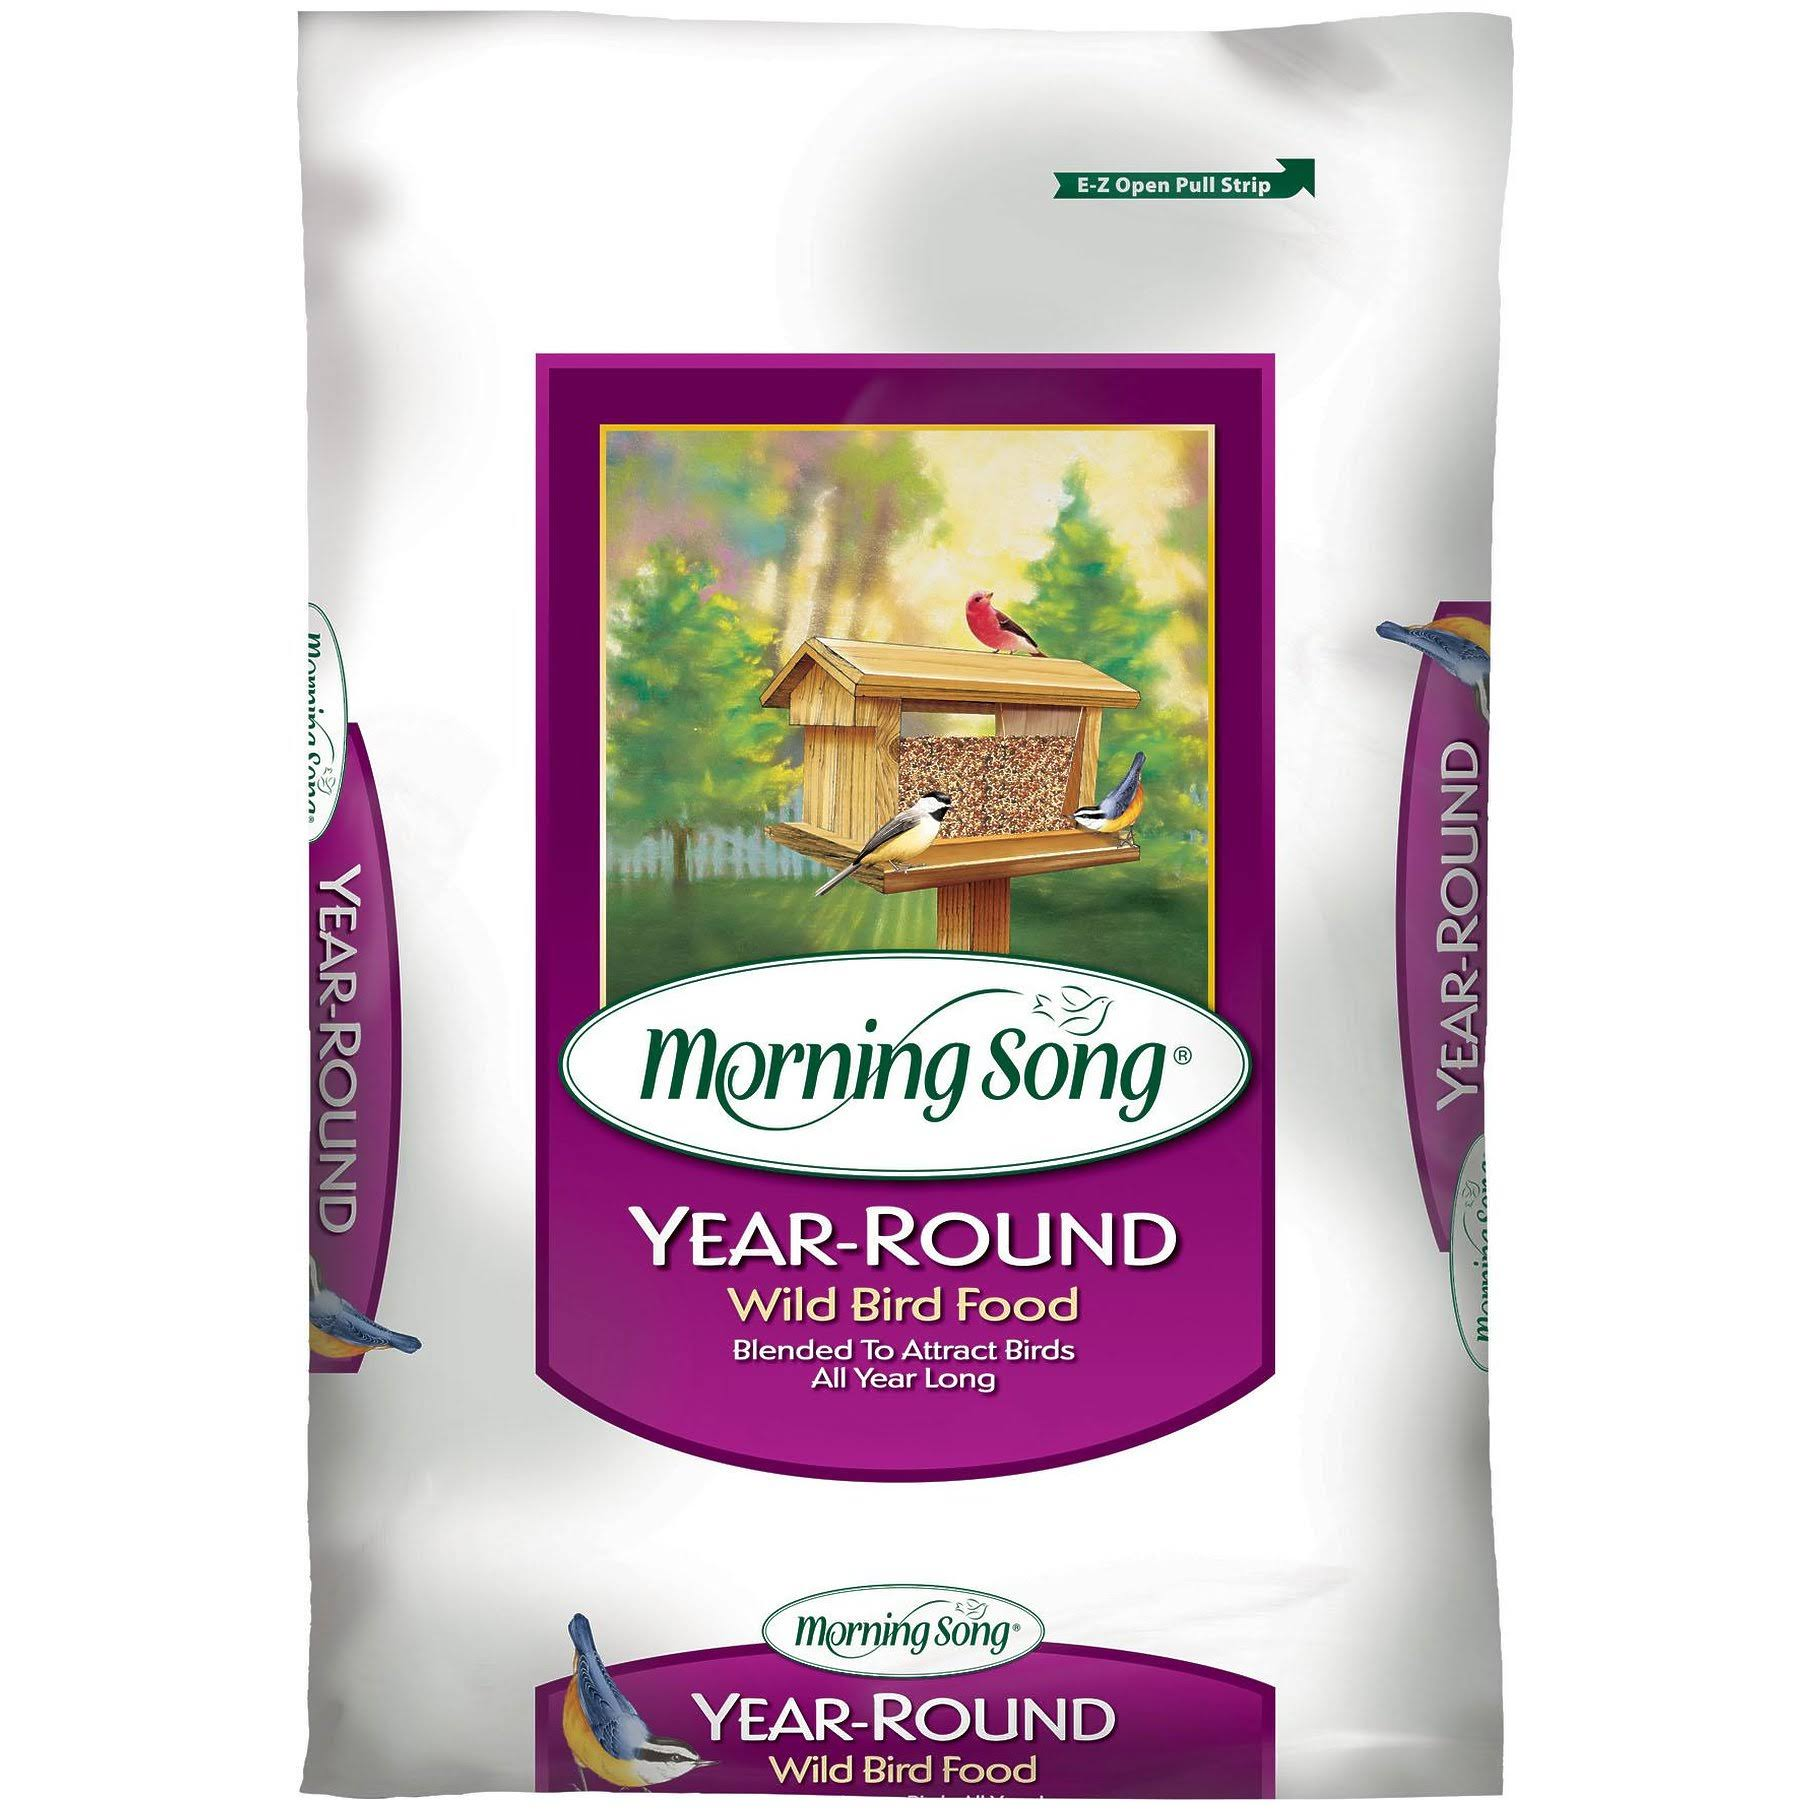 Morning Song 1022526 Year-Round Wild Bird Food - 40lbs